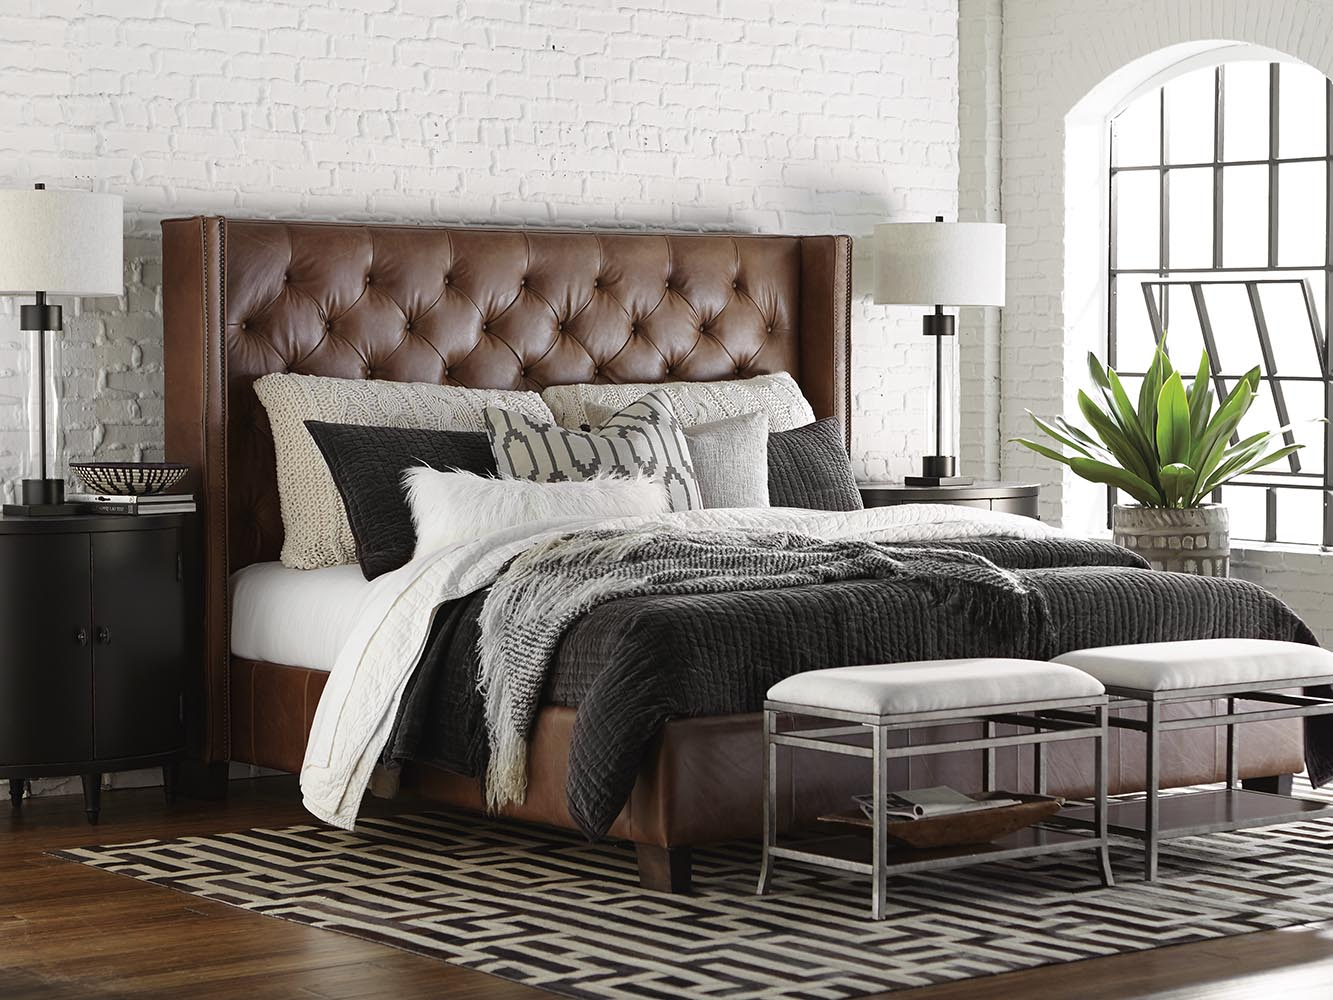 Custom Dublin Uph Bed Image